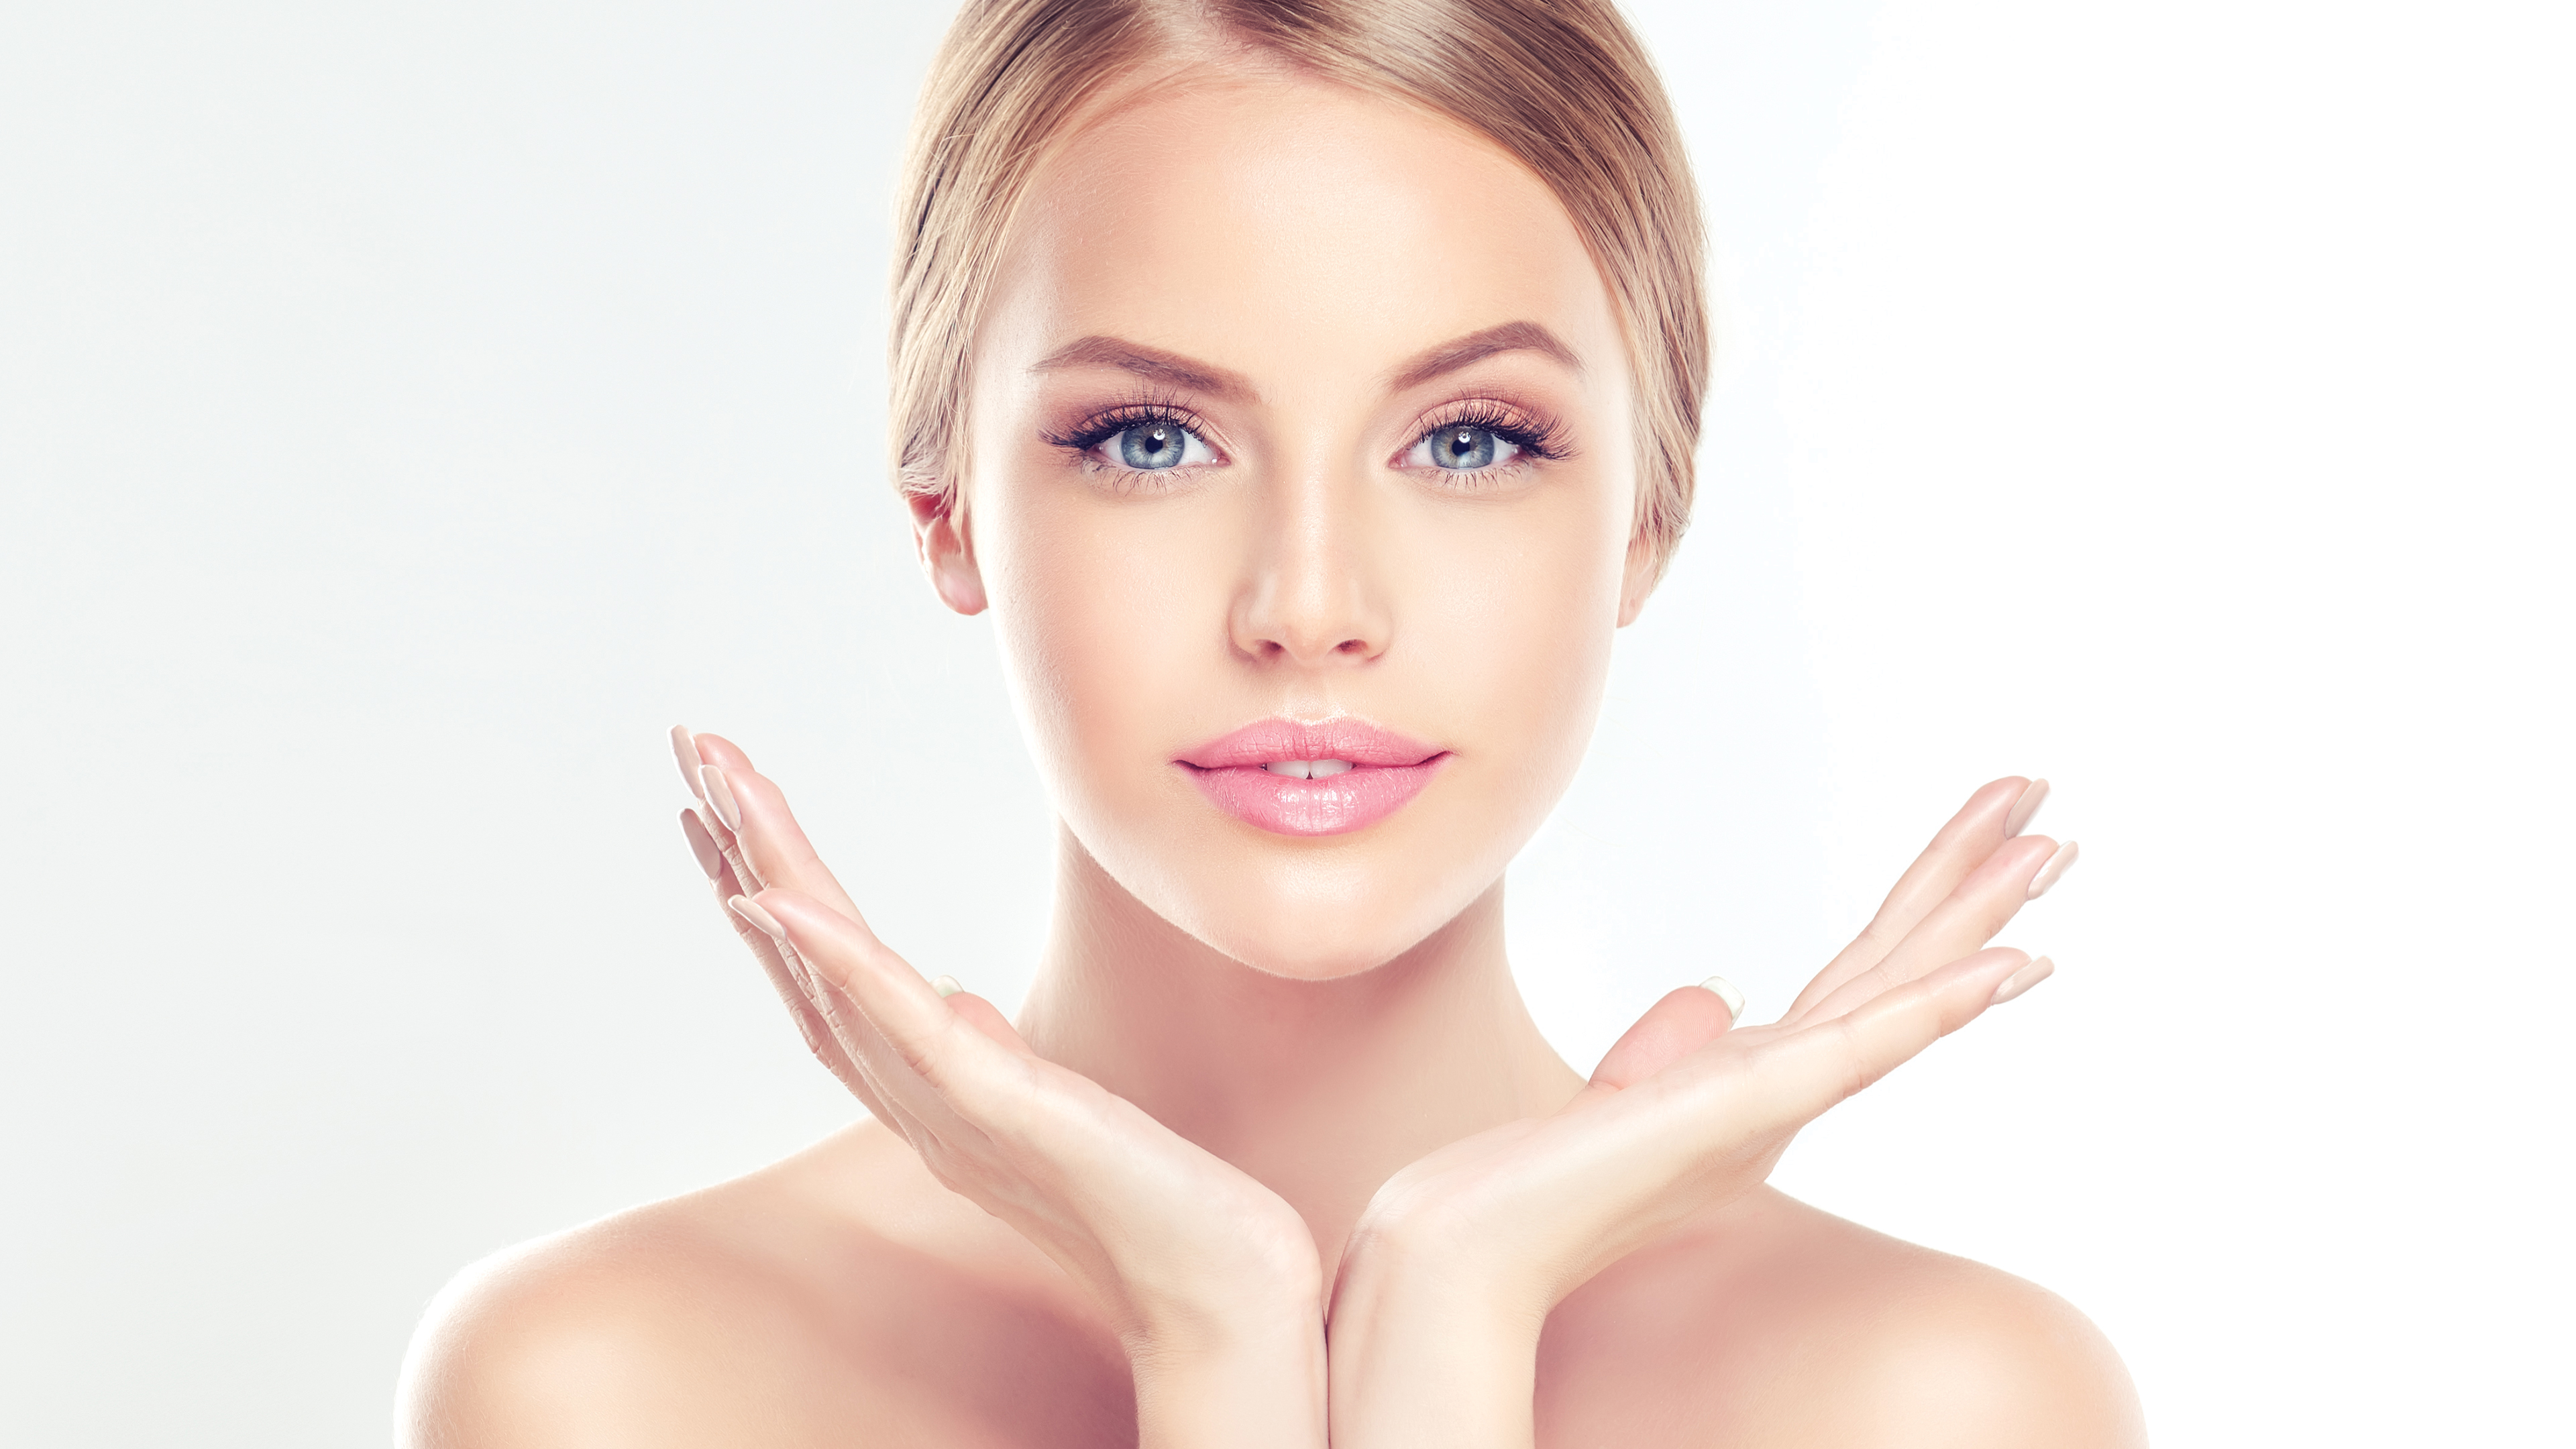 girl-party-lakeland-facial-plastic-surgerytures-mother